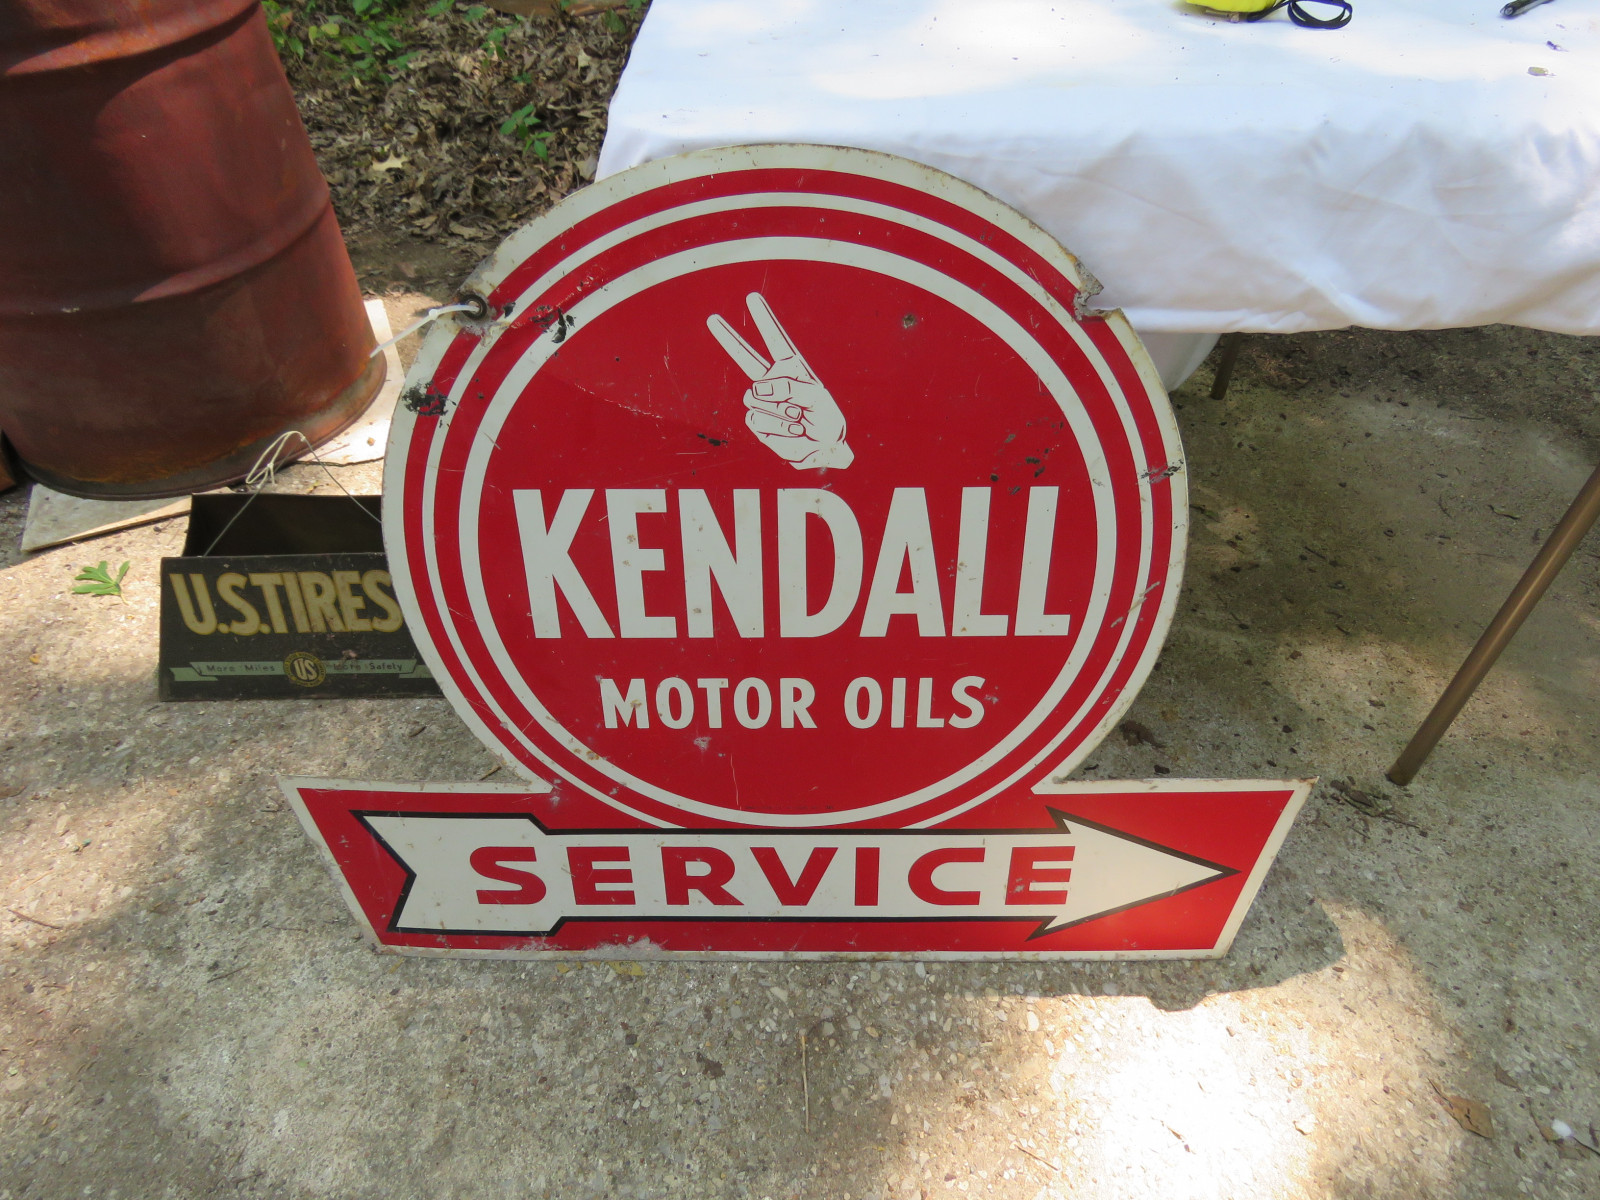 Kendall Oil Painted Tin DS Sign 28x36 inches - Image 2